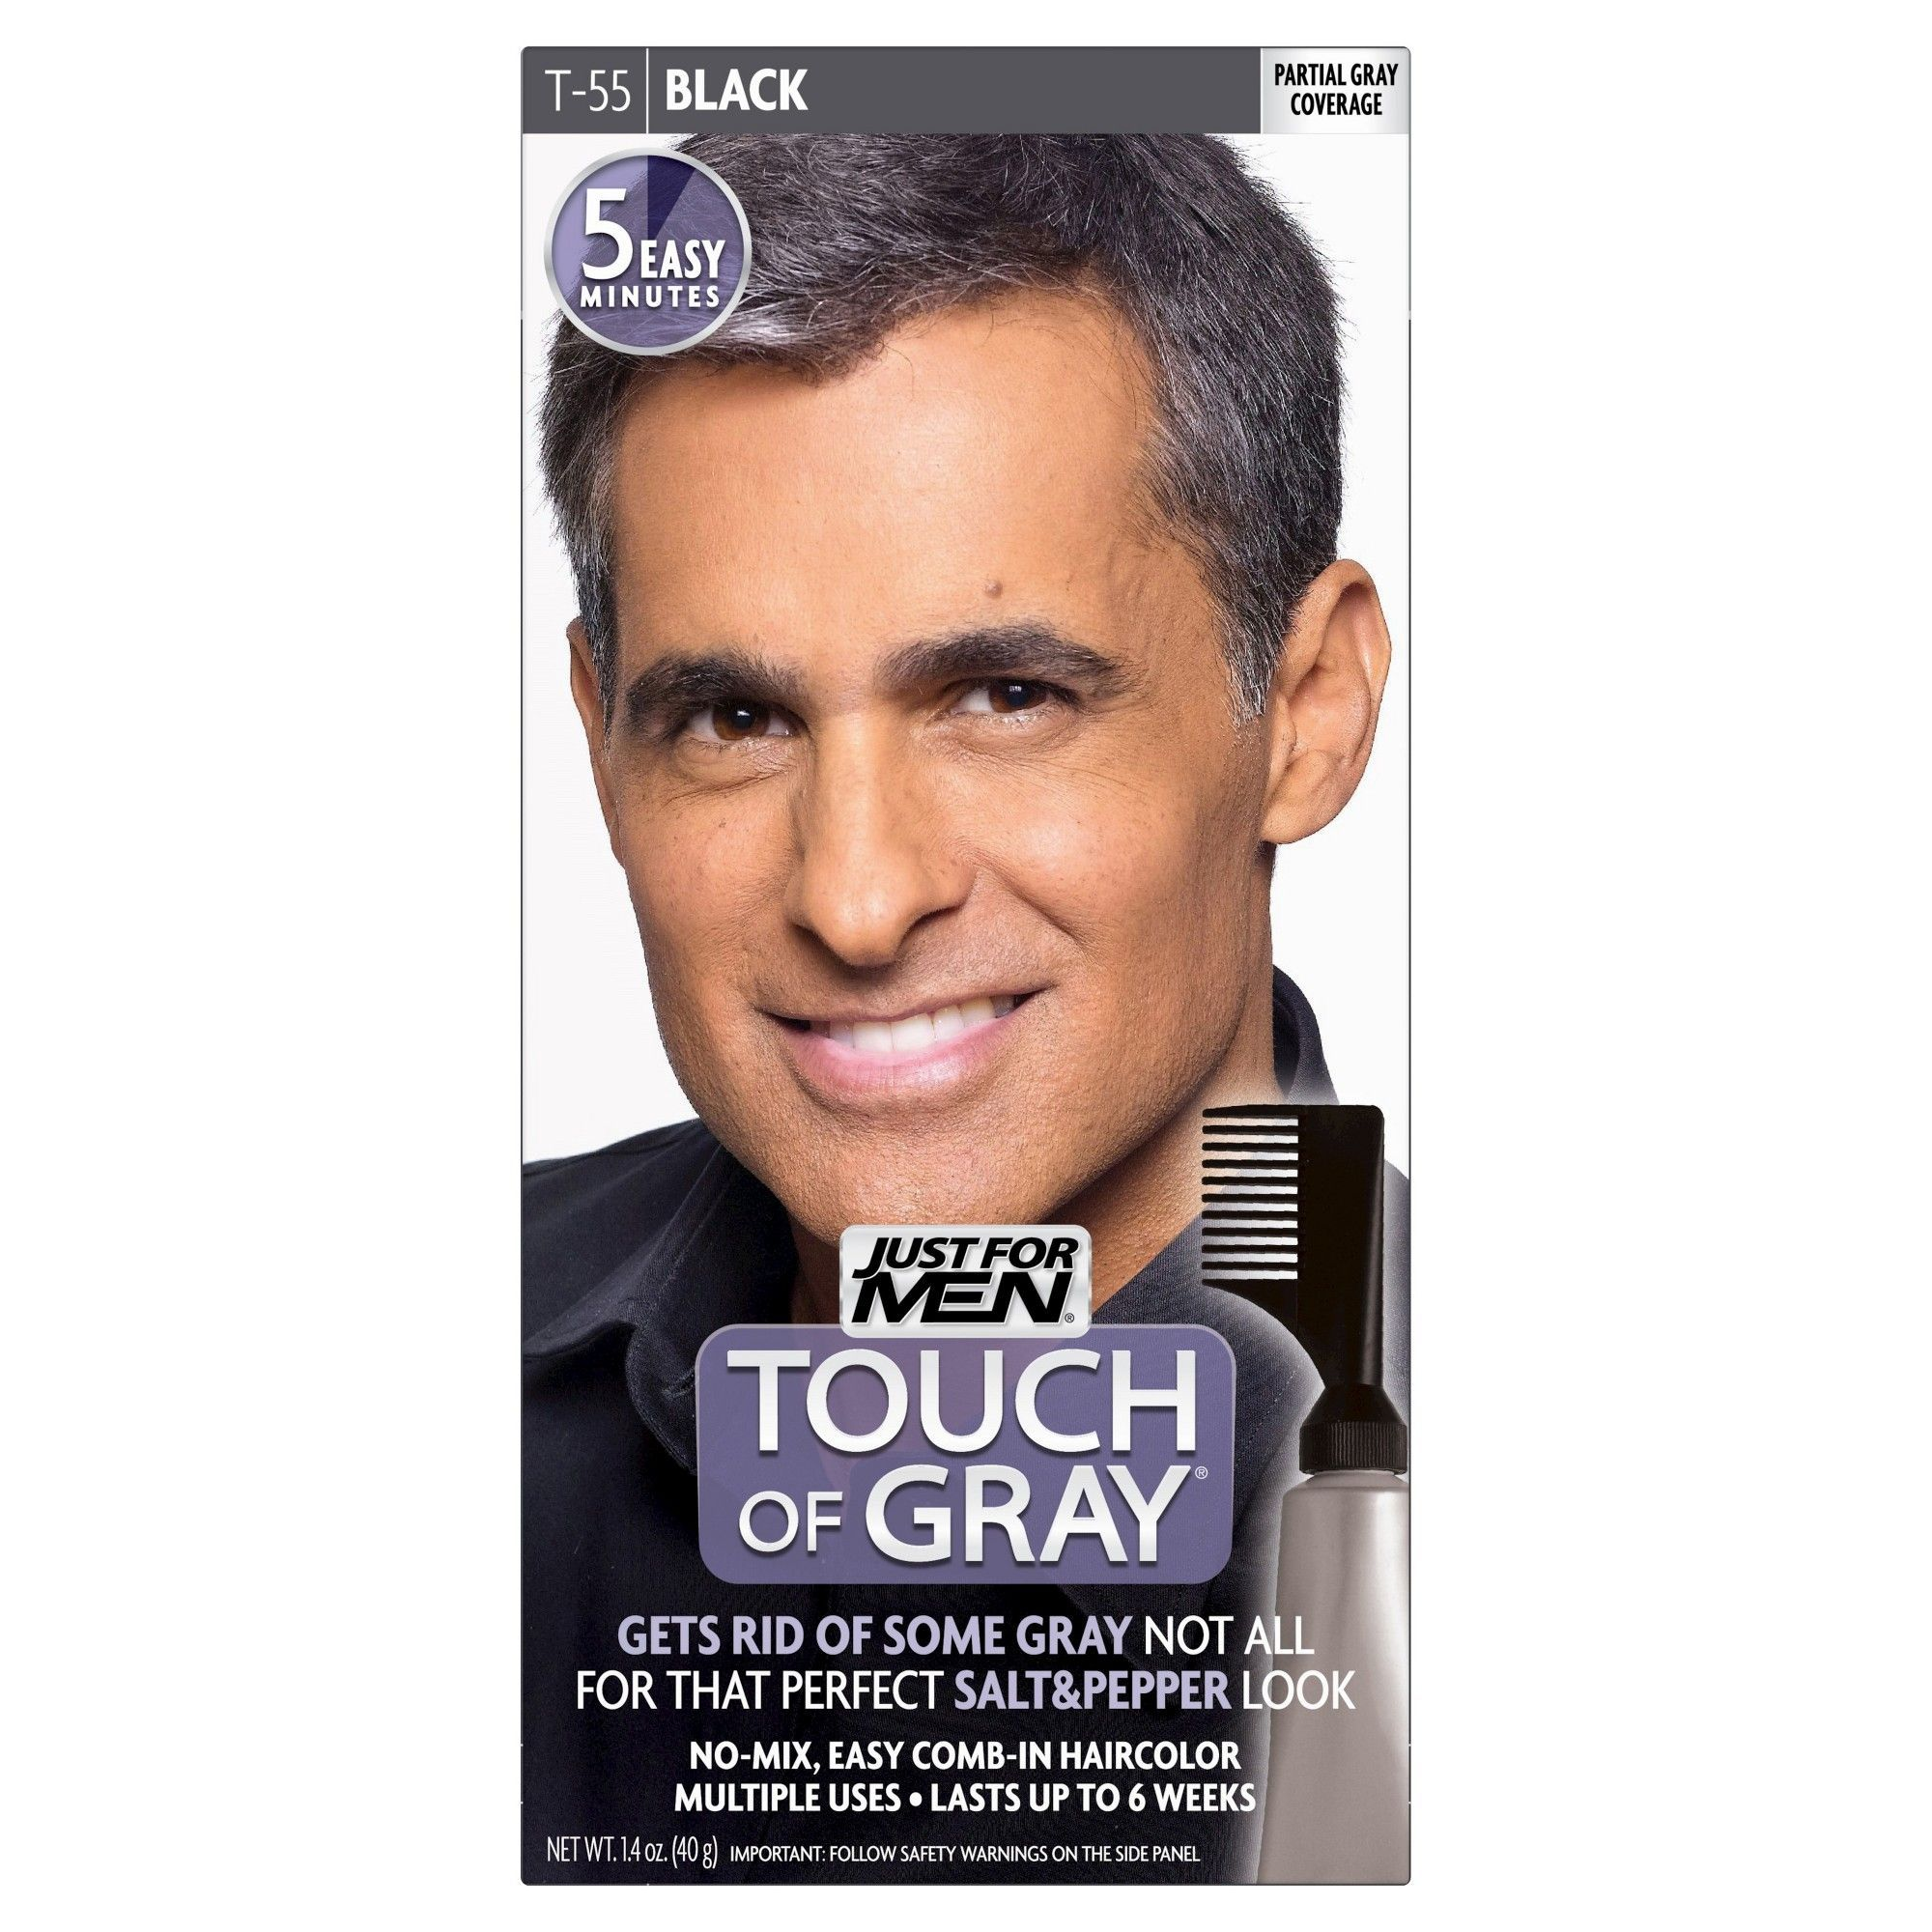 Touch Of Gray Black T 55 Temporary Hair Color Temporary Hair